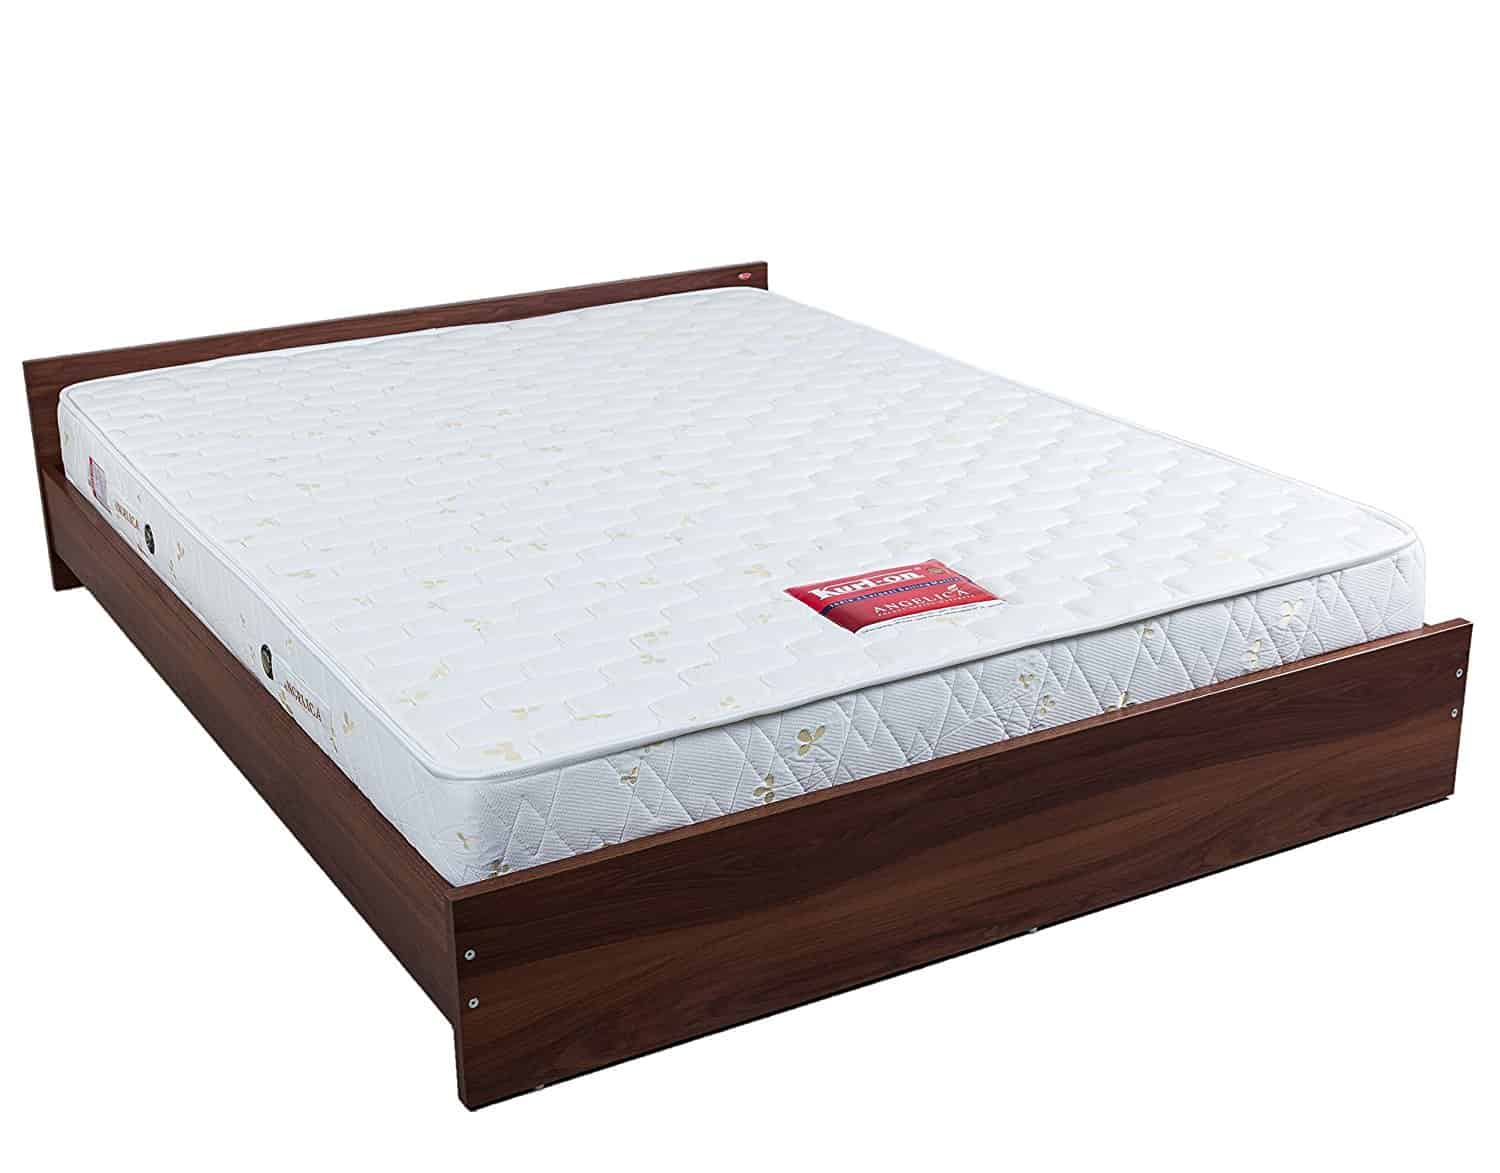 Kurl-on Angelica 6-inch Queen Size Spring Mattress